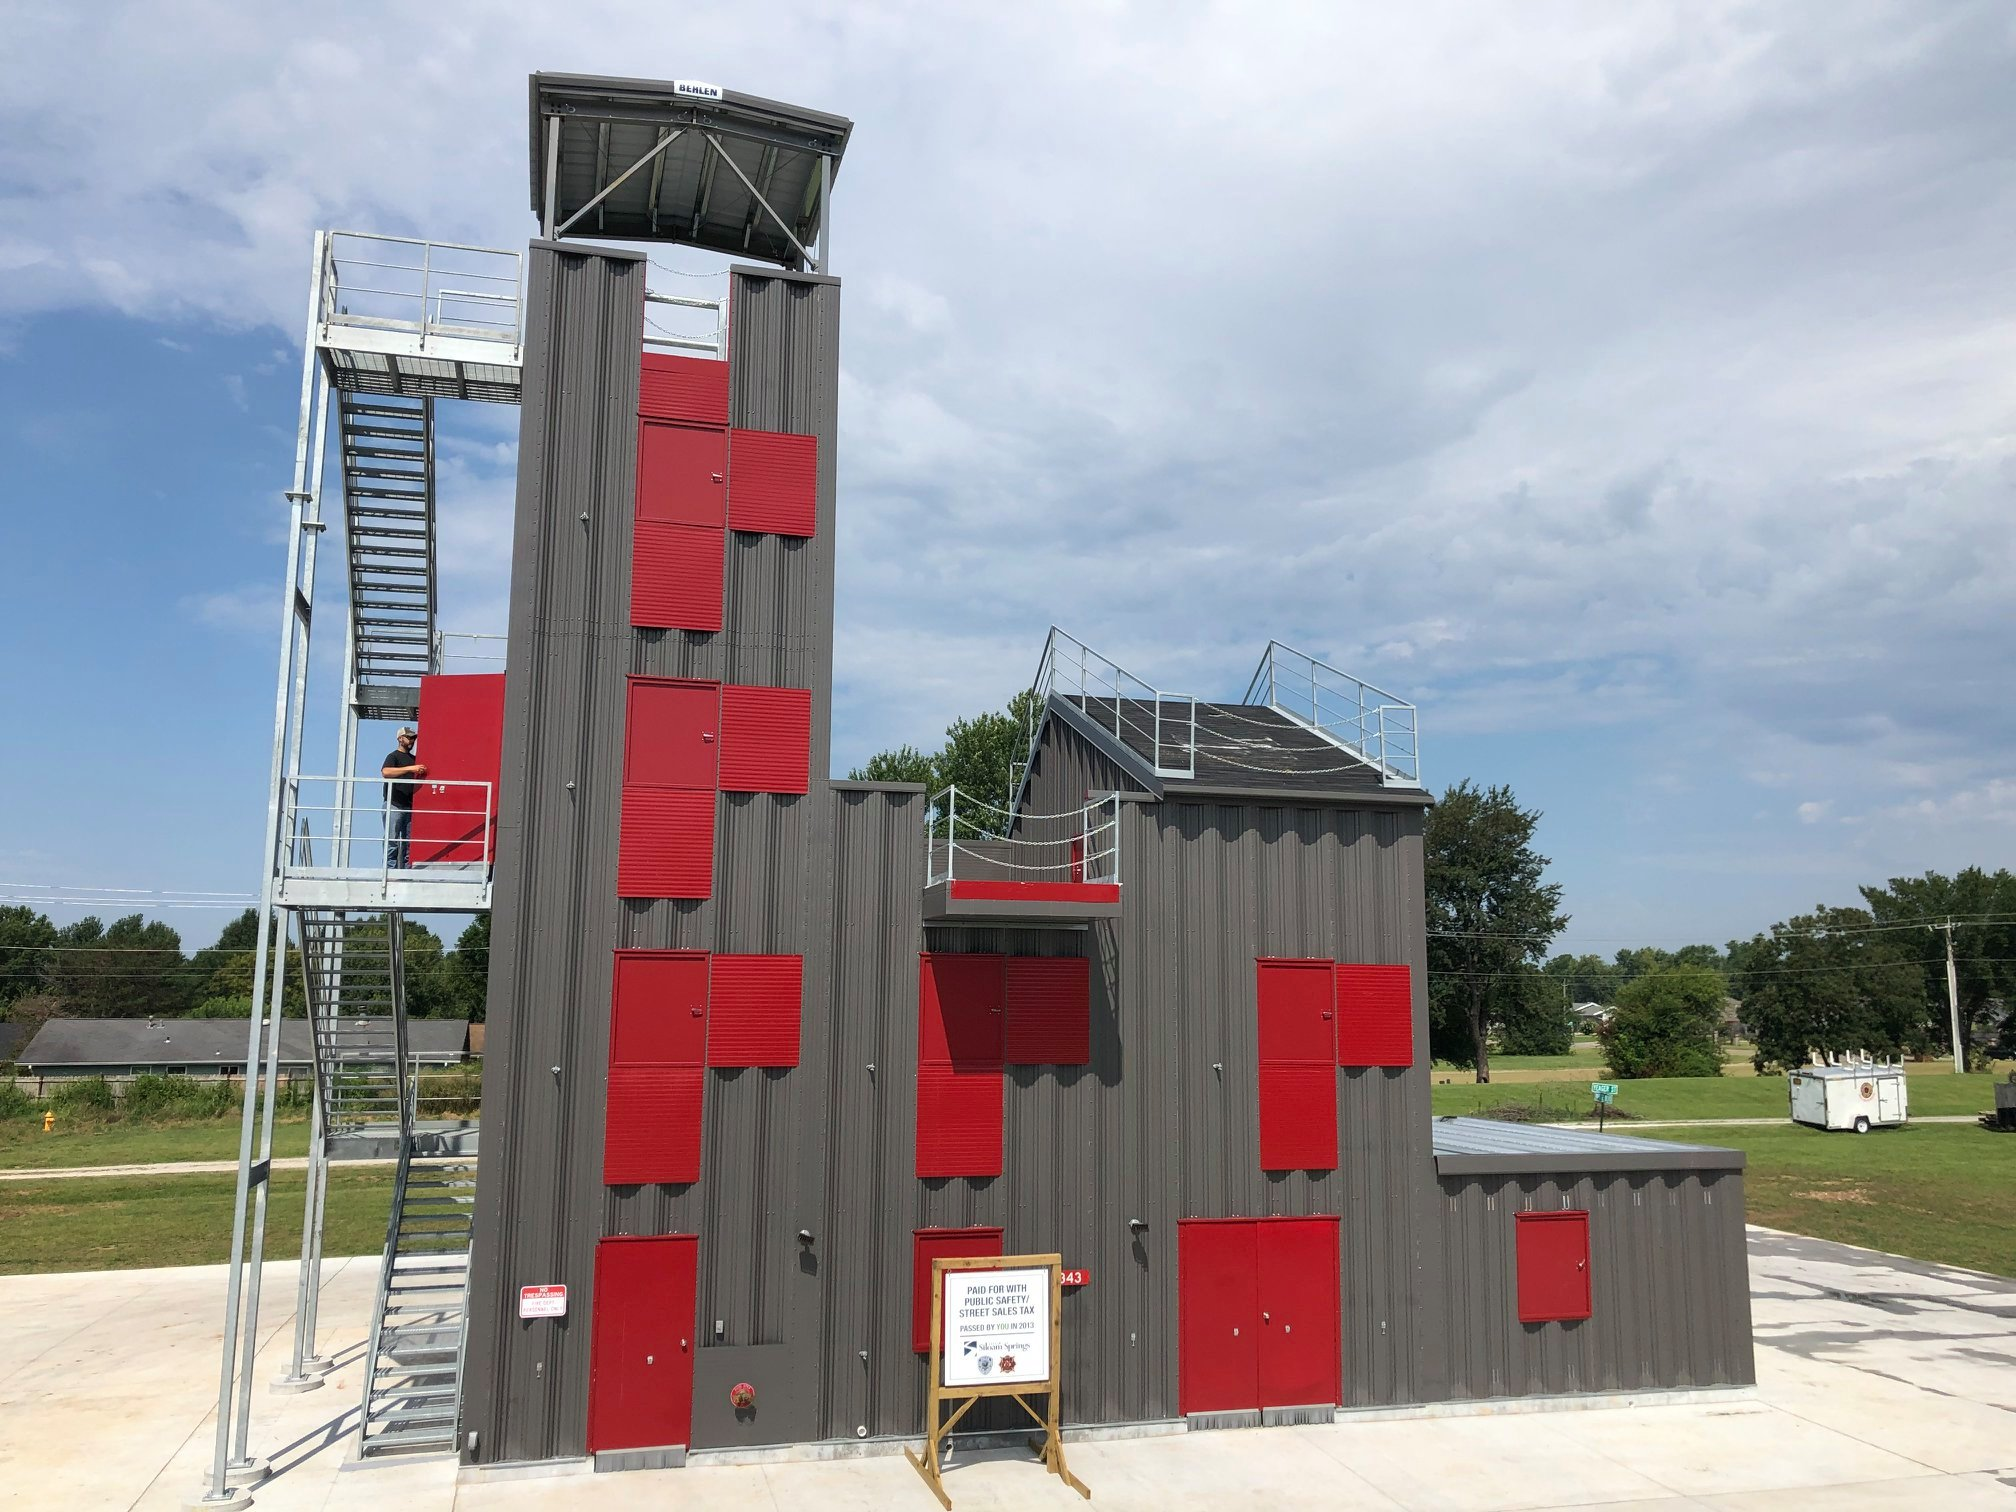 Siloam Springs Fire Department 4 story fire training tower